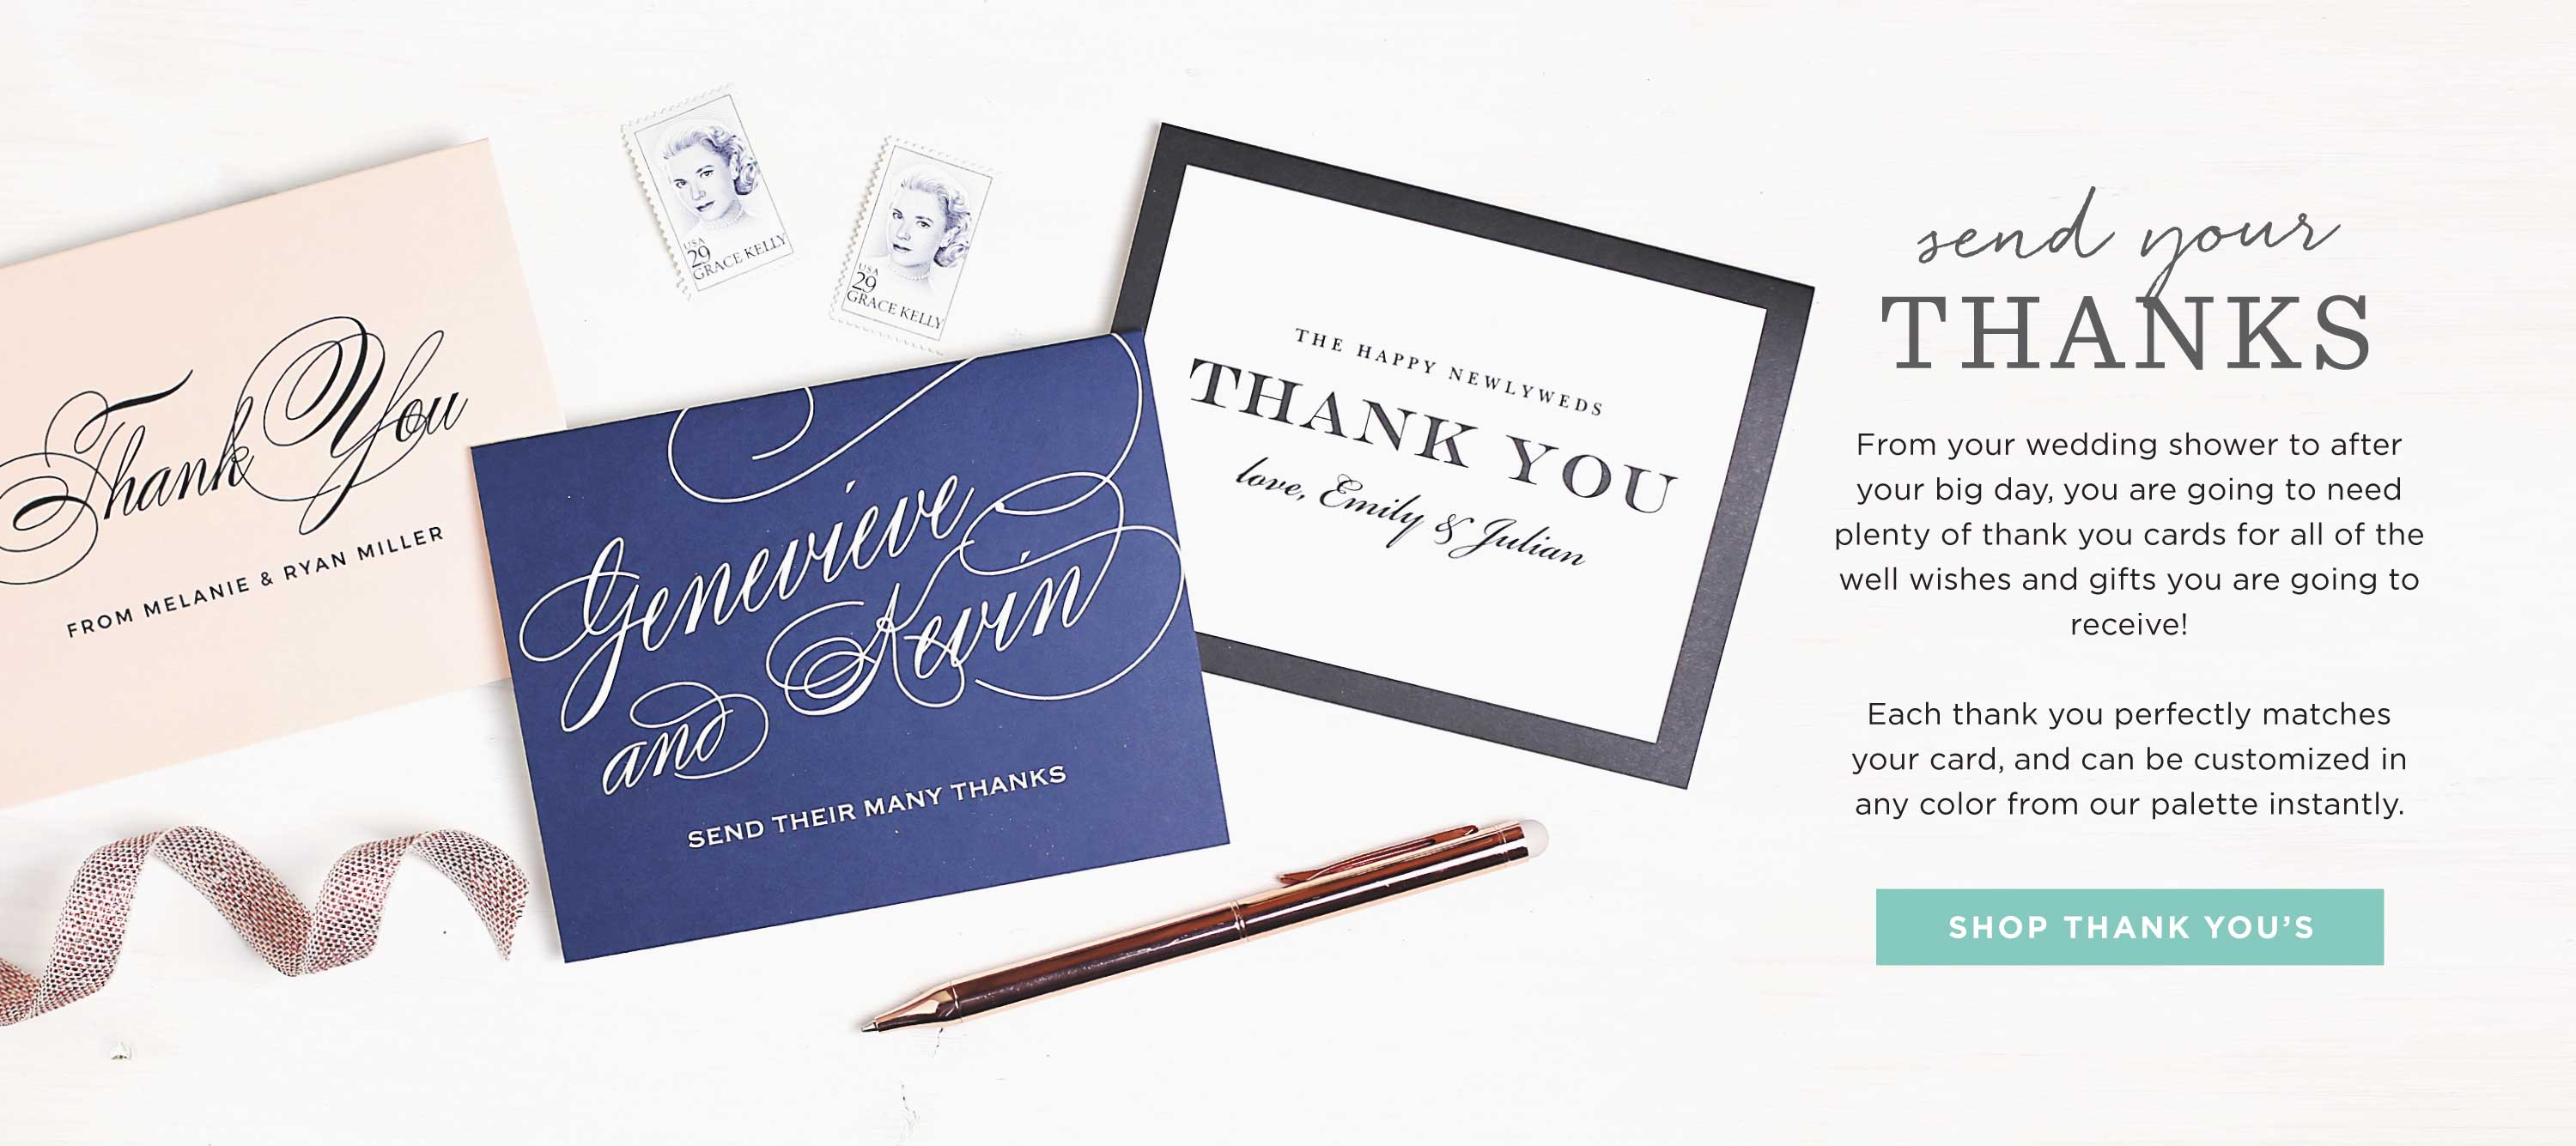 Thank you cards by Basic Invite